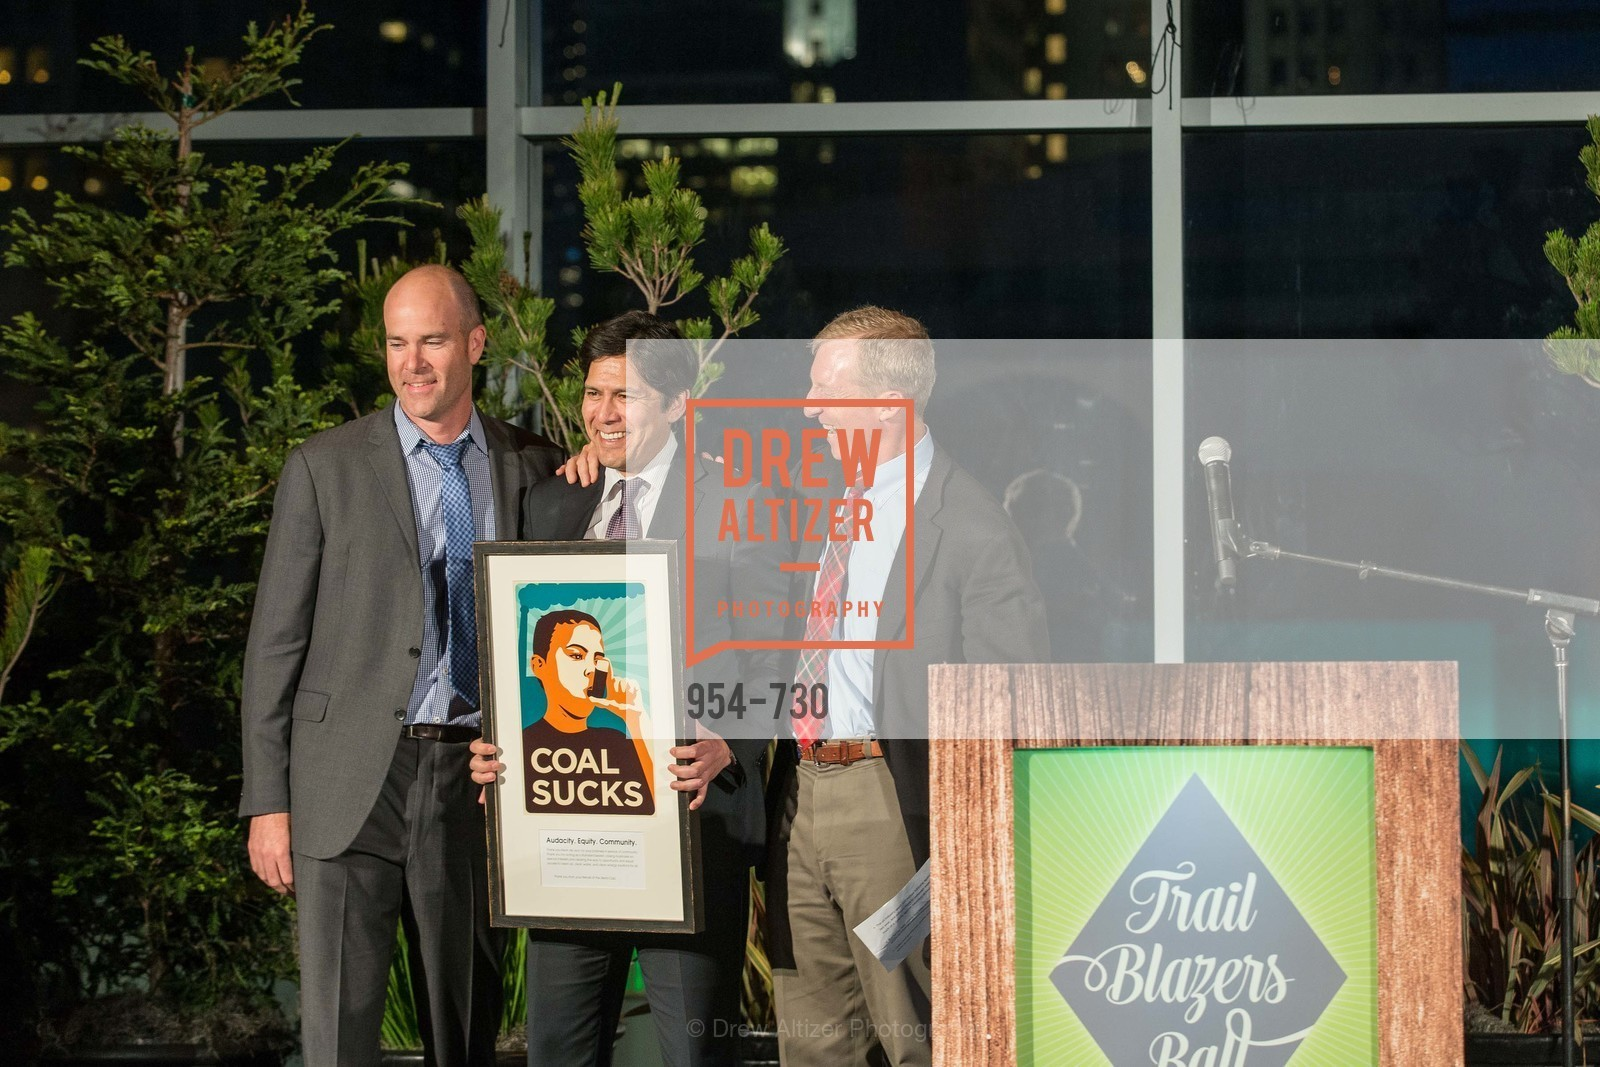 Michael Brune, State Senator Kevin DeLeon, Tom Steyer, 2015 SIERRA CLUB Trail Blazers Ball, US, May 14th, 2015,Drew Altizer, Drew Altizer Photography, full-service agency, private events, San Francisco photographer, photographer california